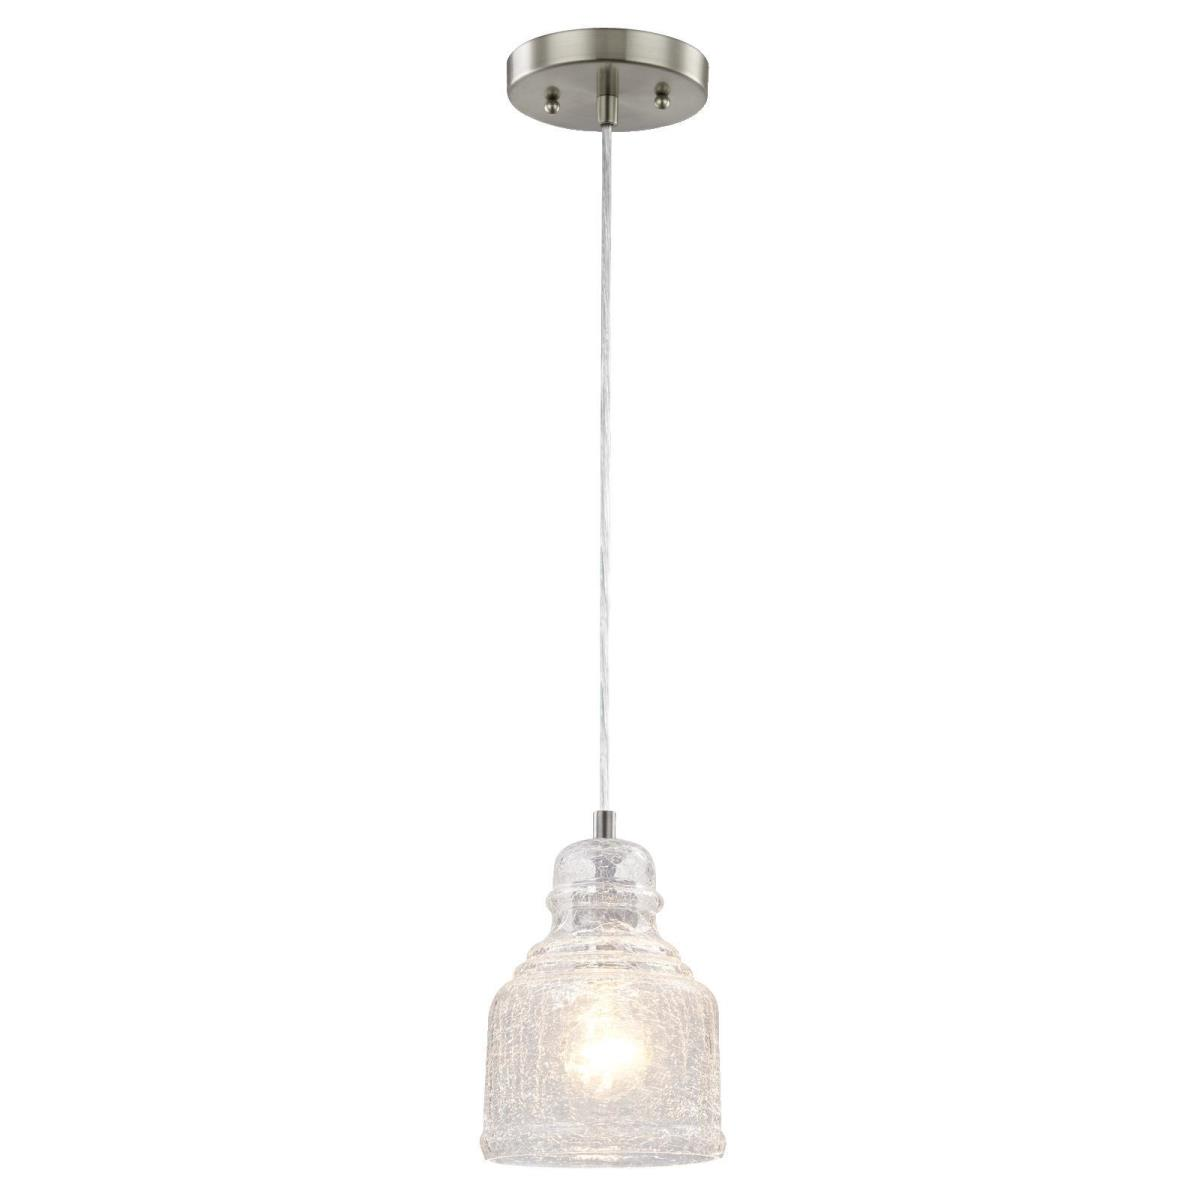 1 Light Mini Pendant Brushed Nickel Finish with Clear Crackle Glass